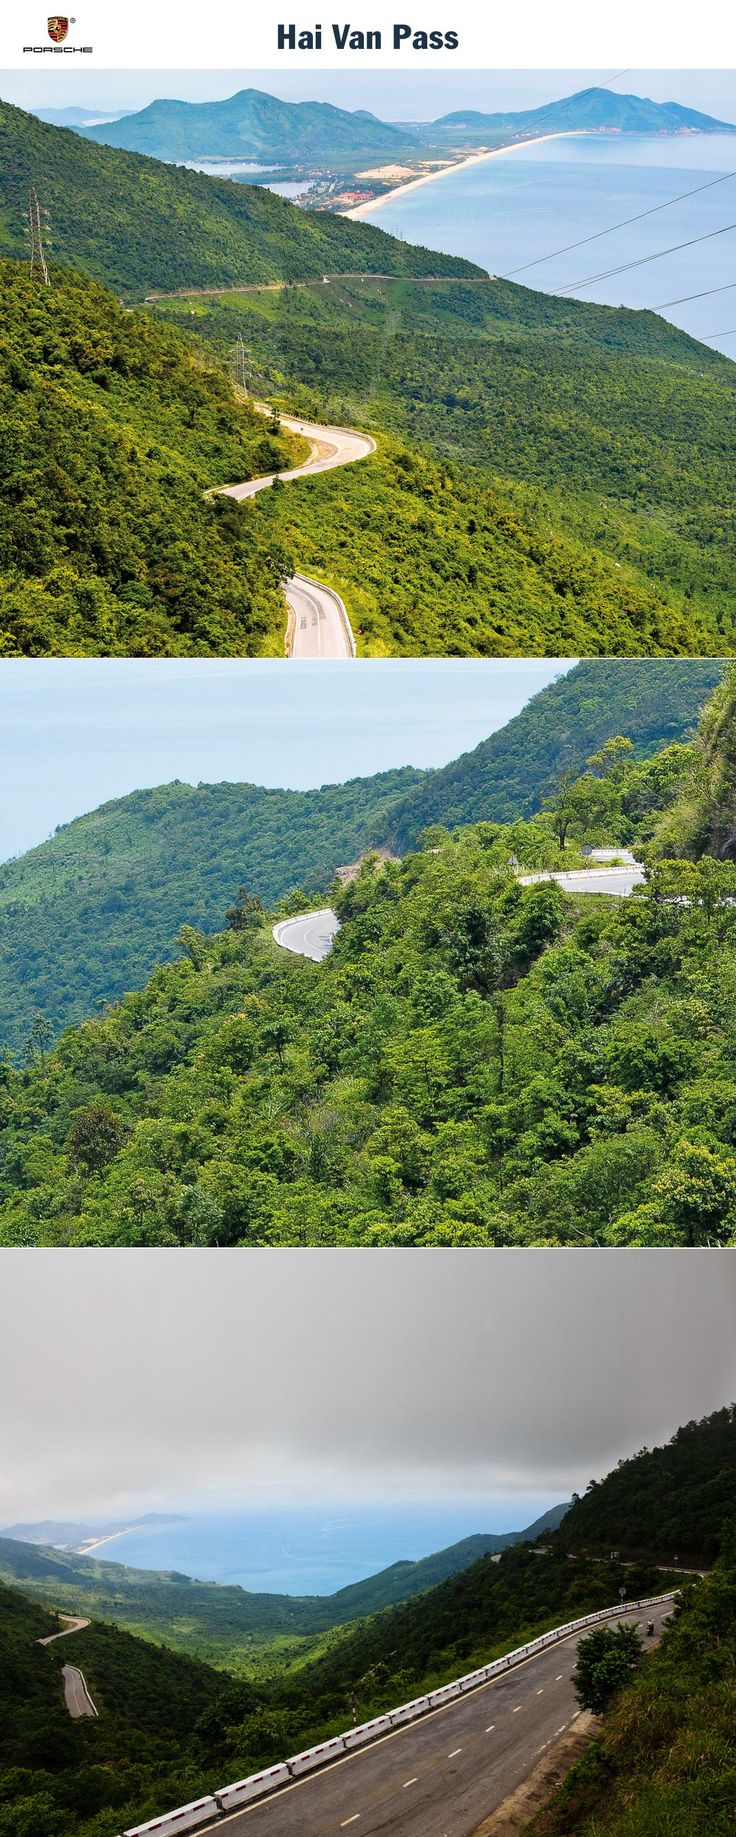 Hai Van Pass, Vietnam. Chasing the road on the South China Sea. Start: Bay of Vinh Kim Lien. Destination: Tien Sa. Driving time: Approx. 6 hours. Distance: Approx. 369 km (229 miles). Recommended travel time: March - November.   Learn more: http://link.porsche.com/gts/vietnam